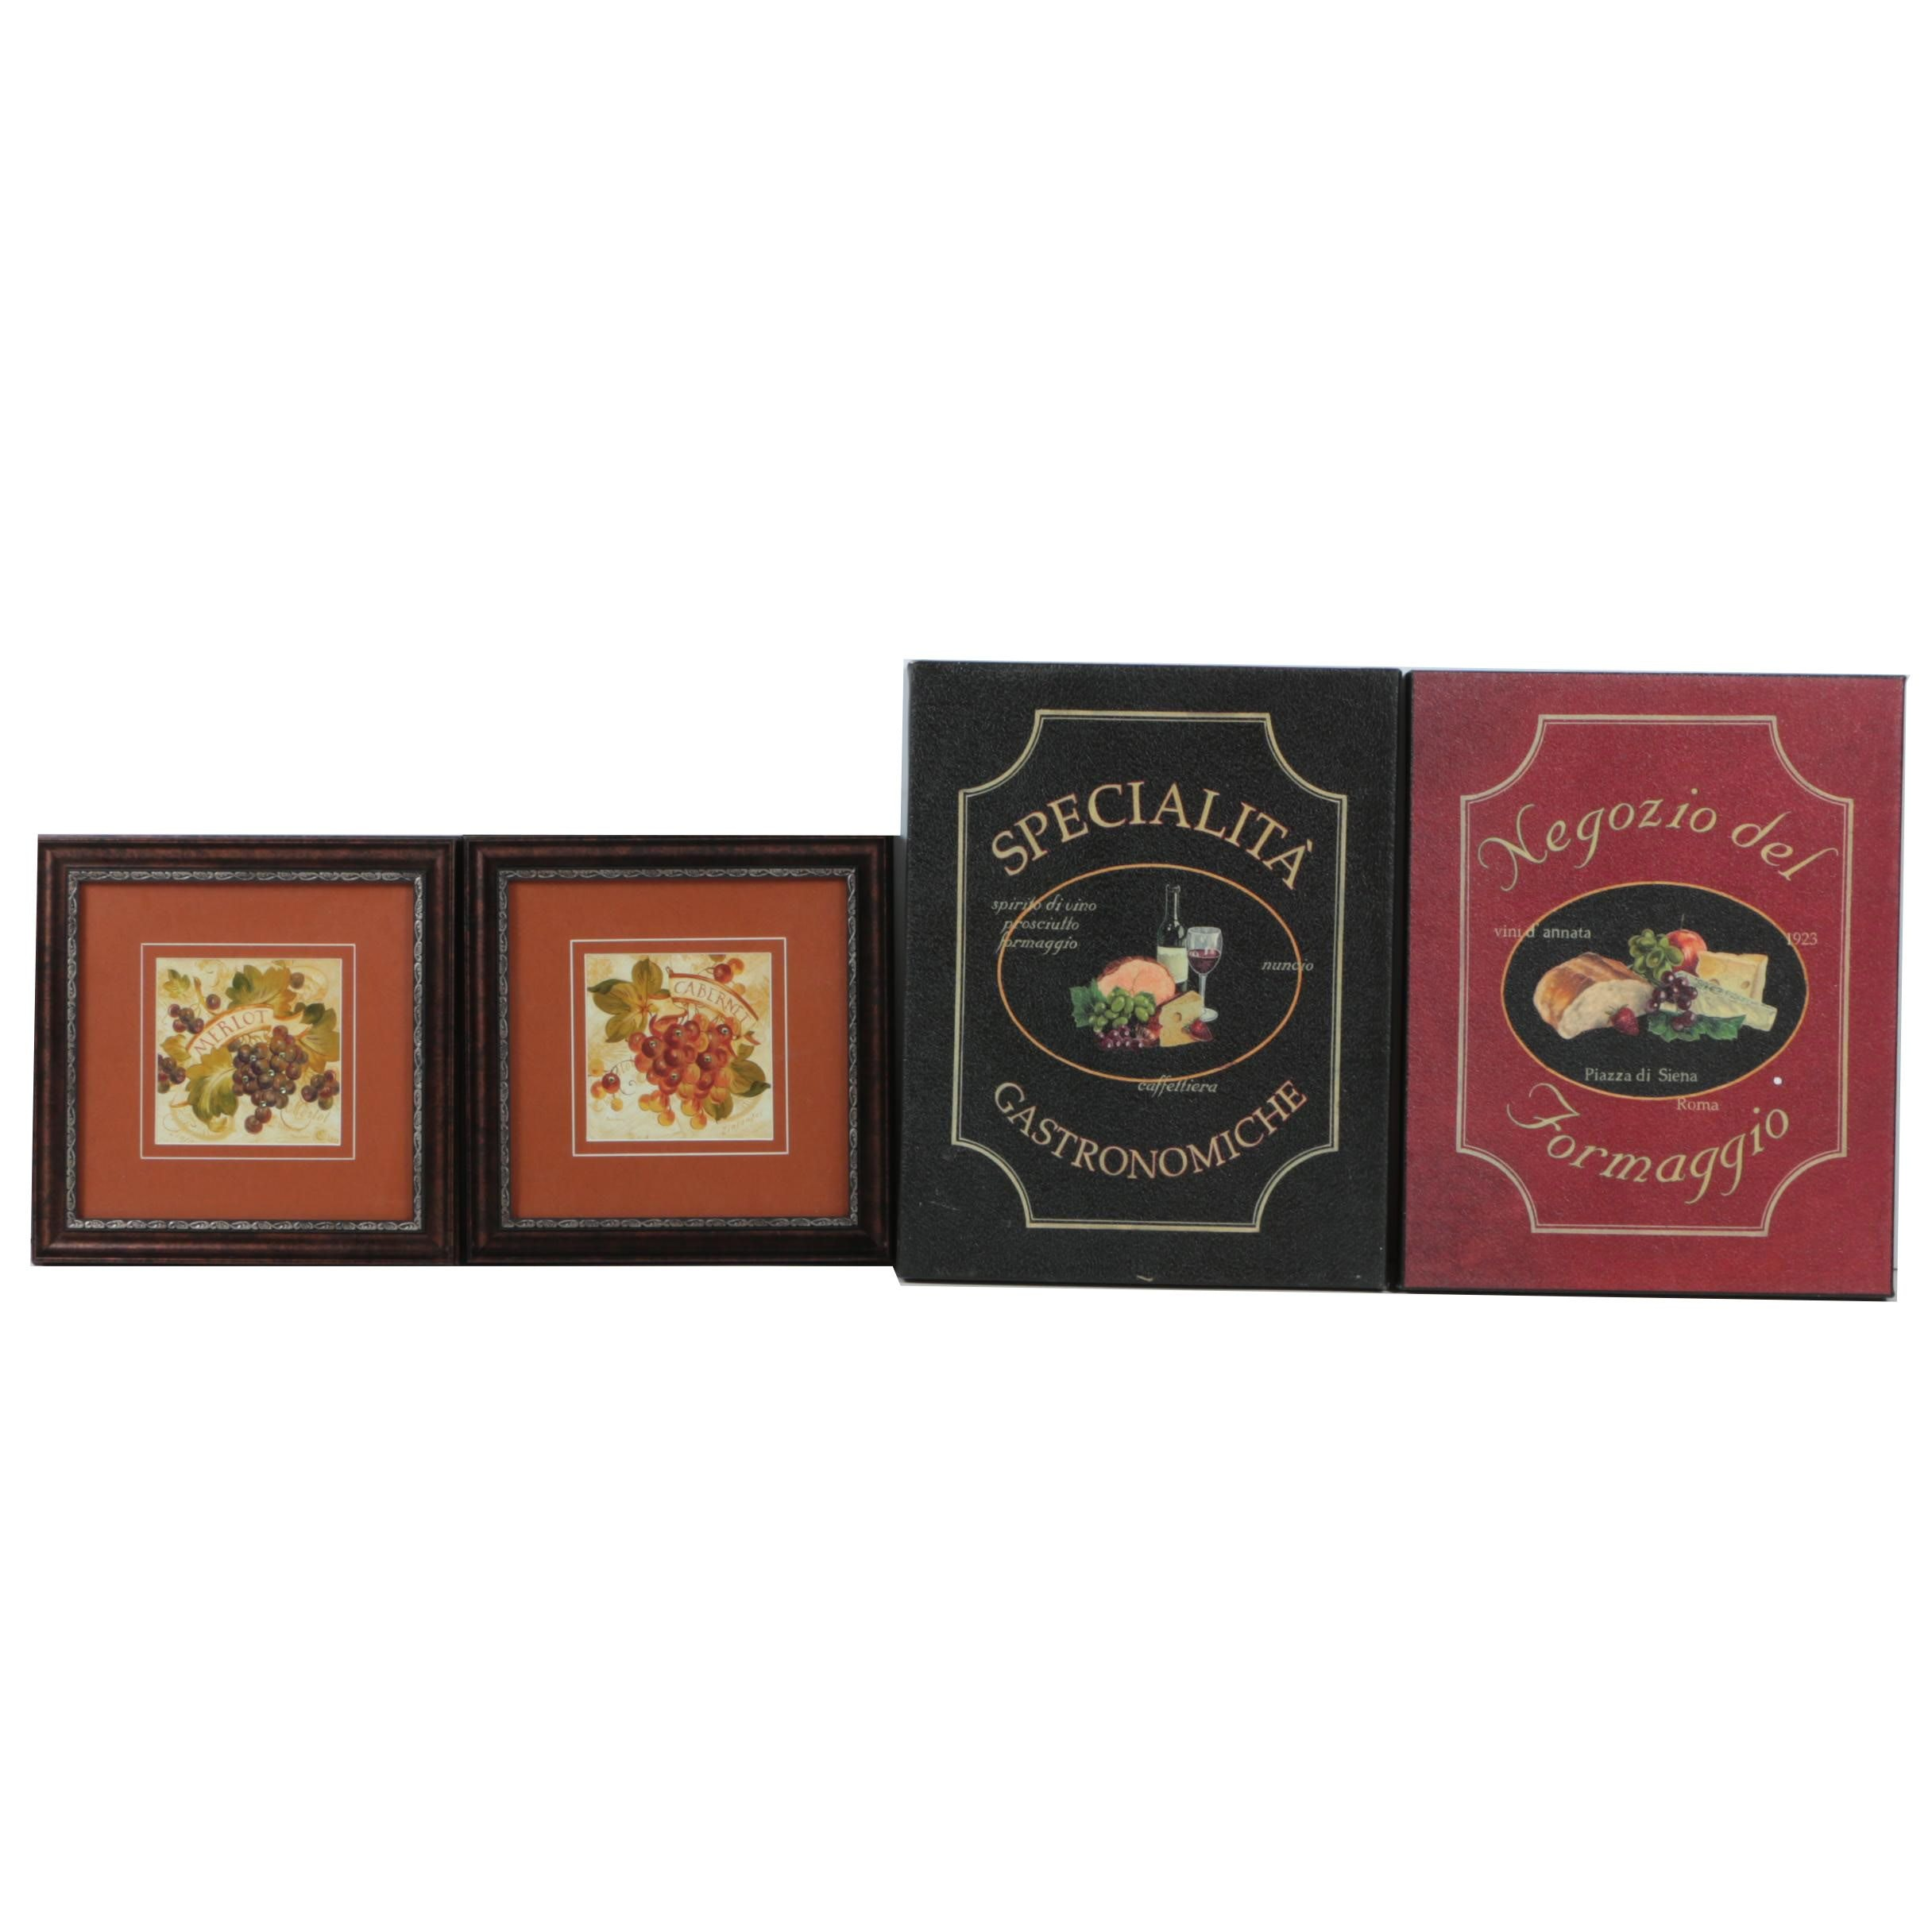 Collection of Reproduction Prints with a Wine and Cheese Theme